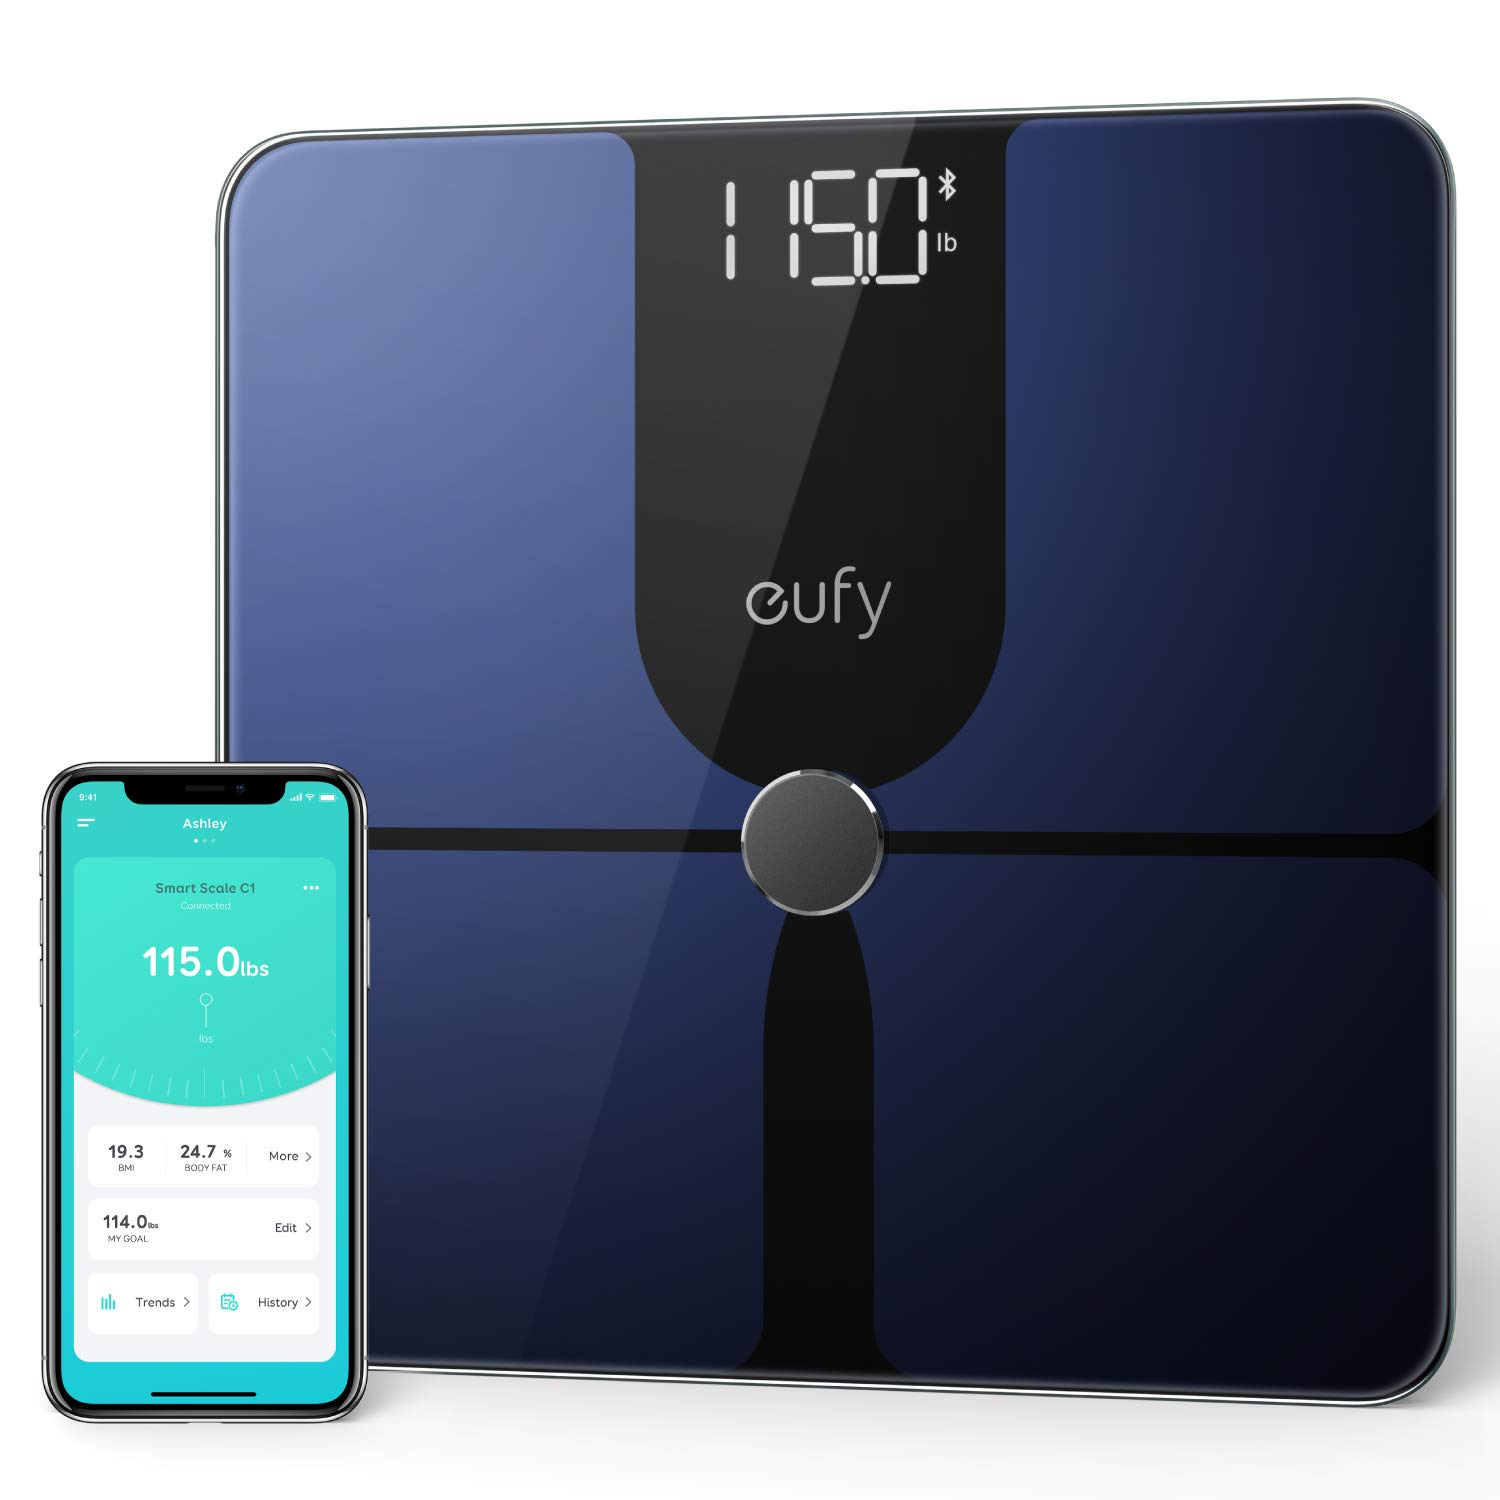 eufy Smart Scale P1 with Bluetooth, Body Fat Scale, Wireless Digital Bathroom Scale, 14 Measurements, Weight/Body Fat/BMI, Fitness Body Composition Analysis, Black/White, lbs/kg by eufy (Image #1)